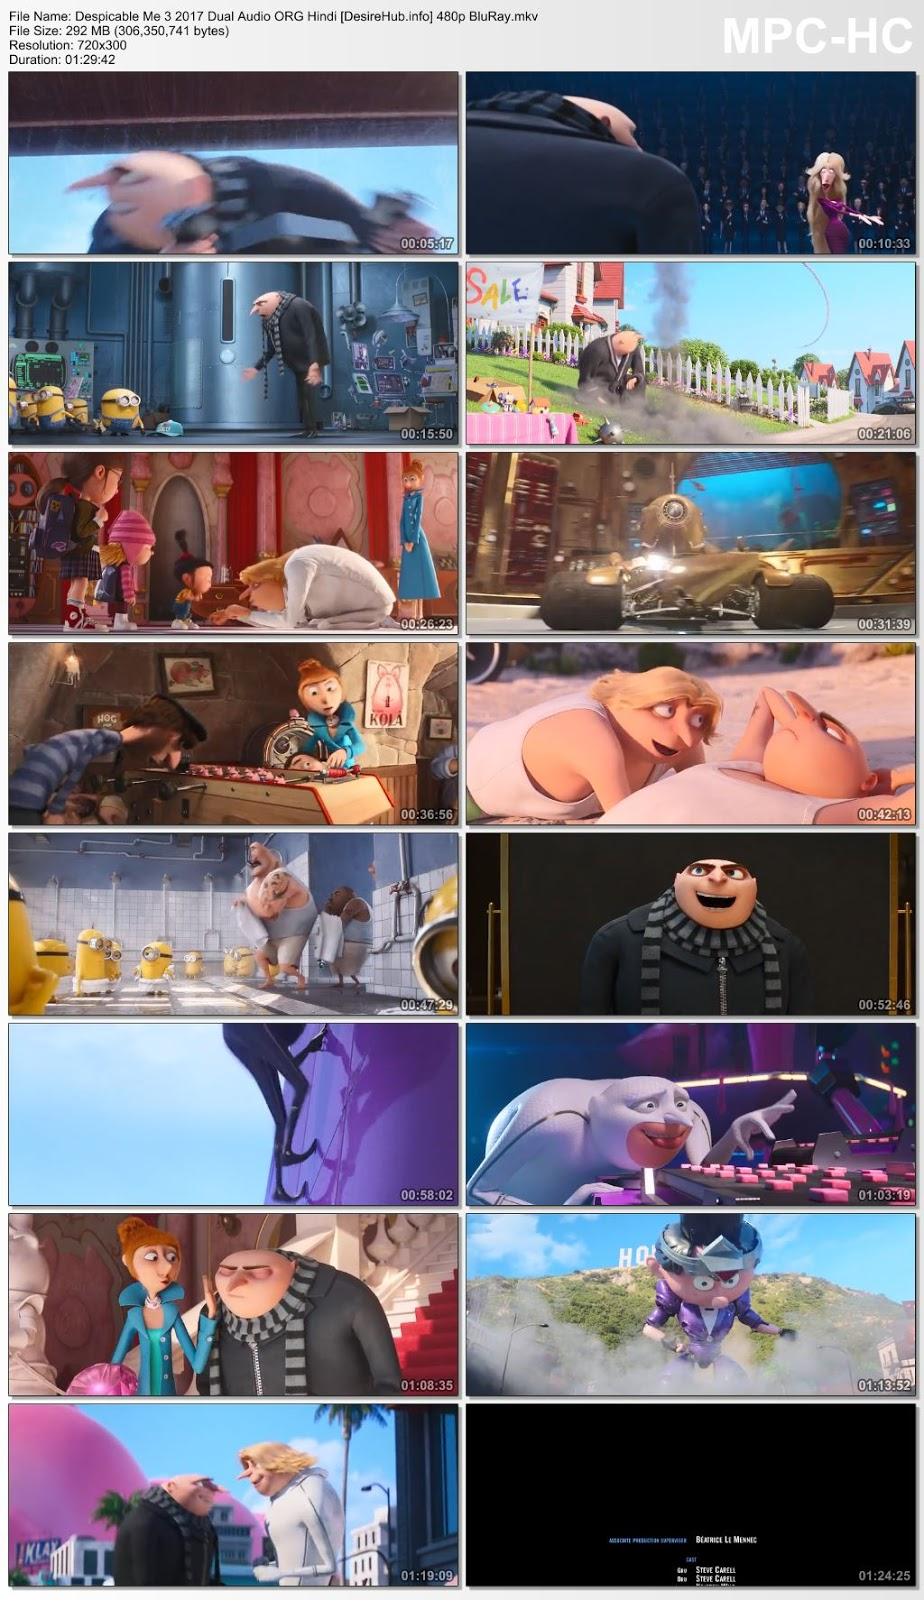 Despicable Me 3 2017 Dual Audio ORG Hindi 480p BluRay 280MB Desirehub